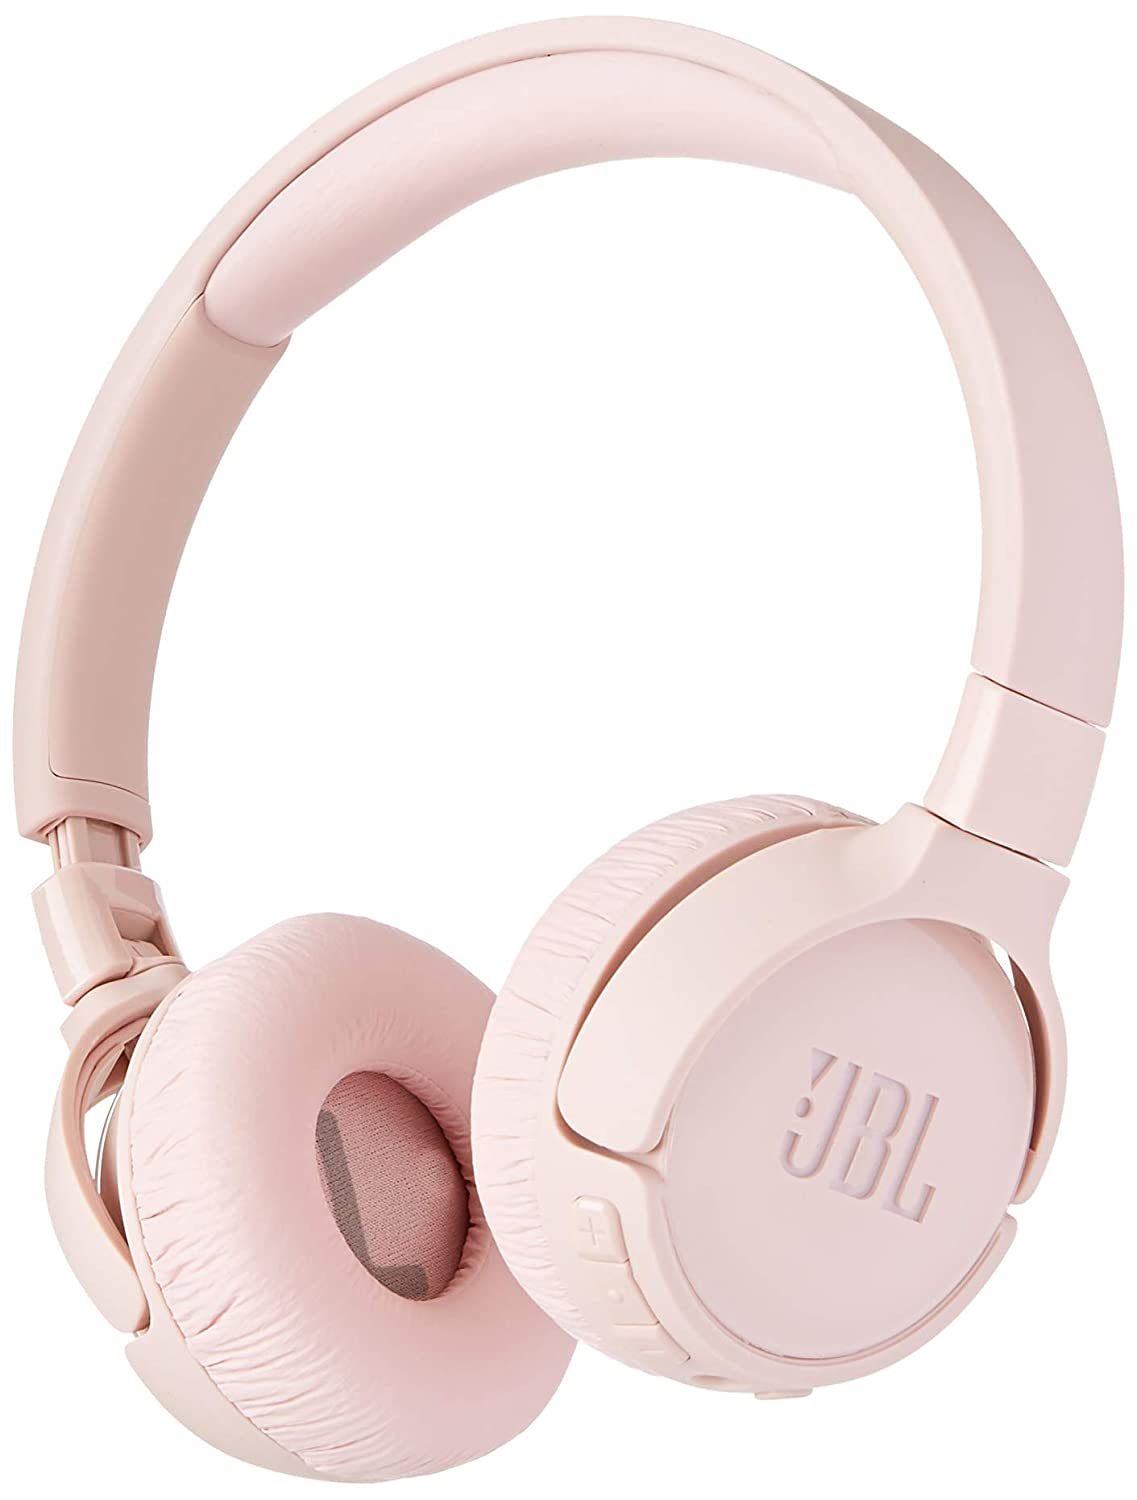 JBL Tune 600BTNC On-Ear Headphones Pink